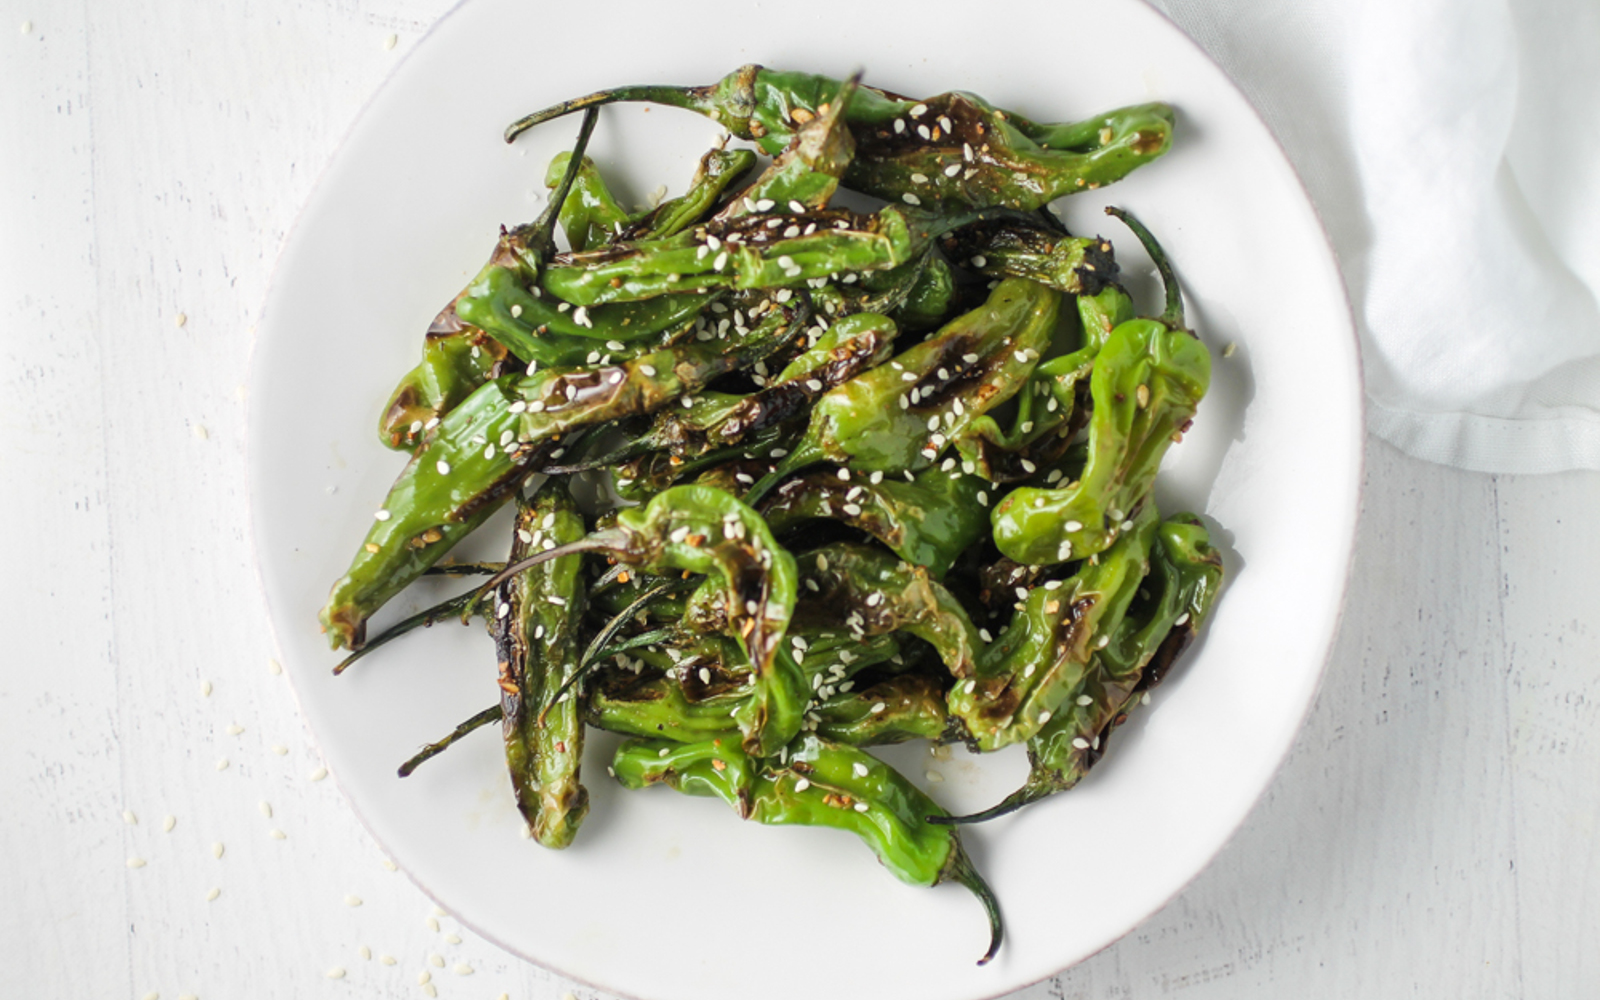 Blistered Sesame Garlic Shishito Peppers